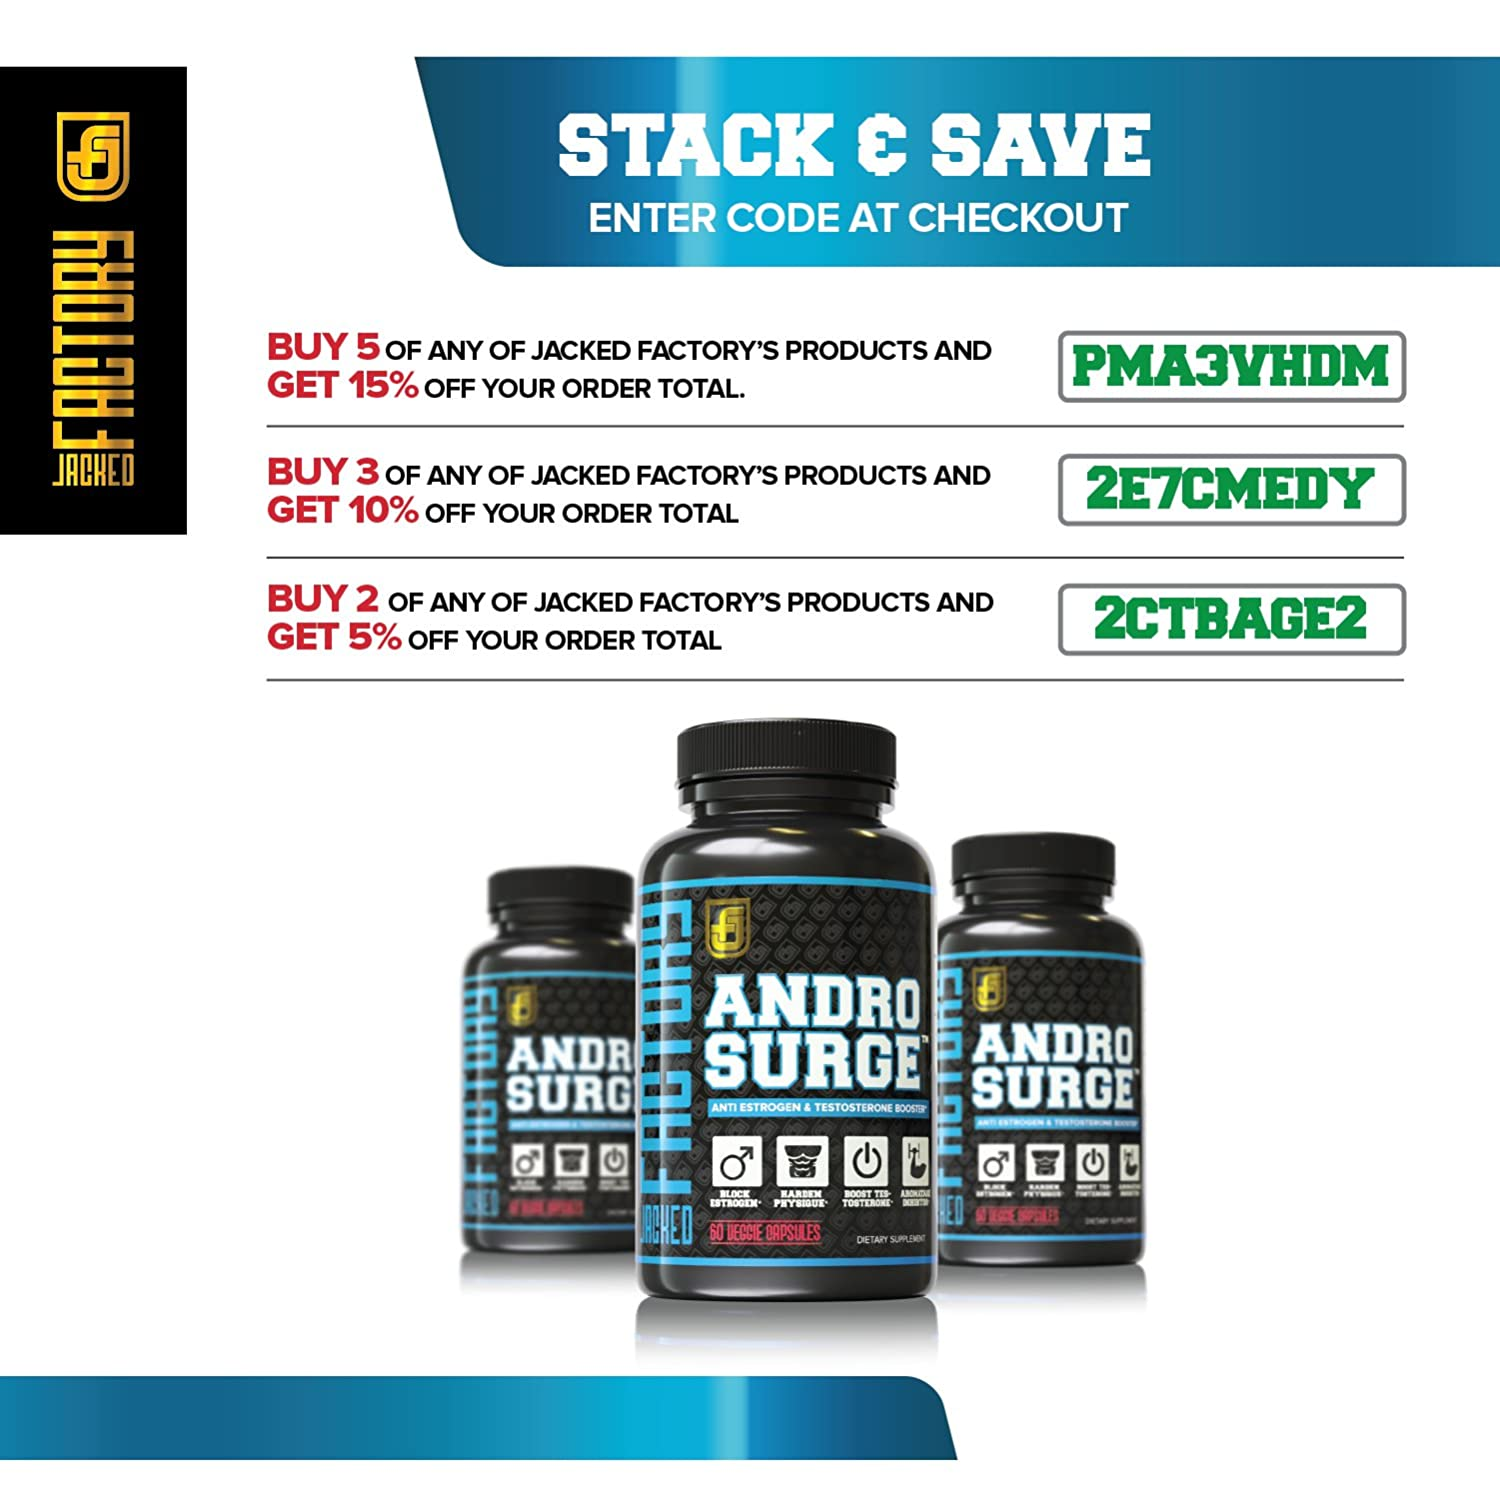 Amazon.com: ANDROSURGE Estrogen Blocker for Men - Natural Anti-Estrogen, Testosterone Booster & Aromatase Inhibitor Supplement - Boost Muscle Growth & Fat ...